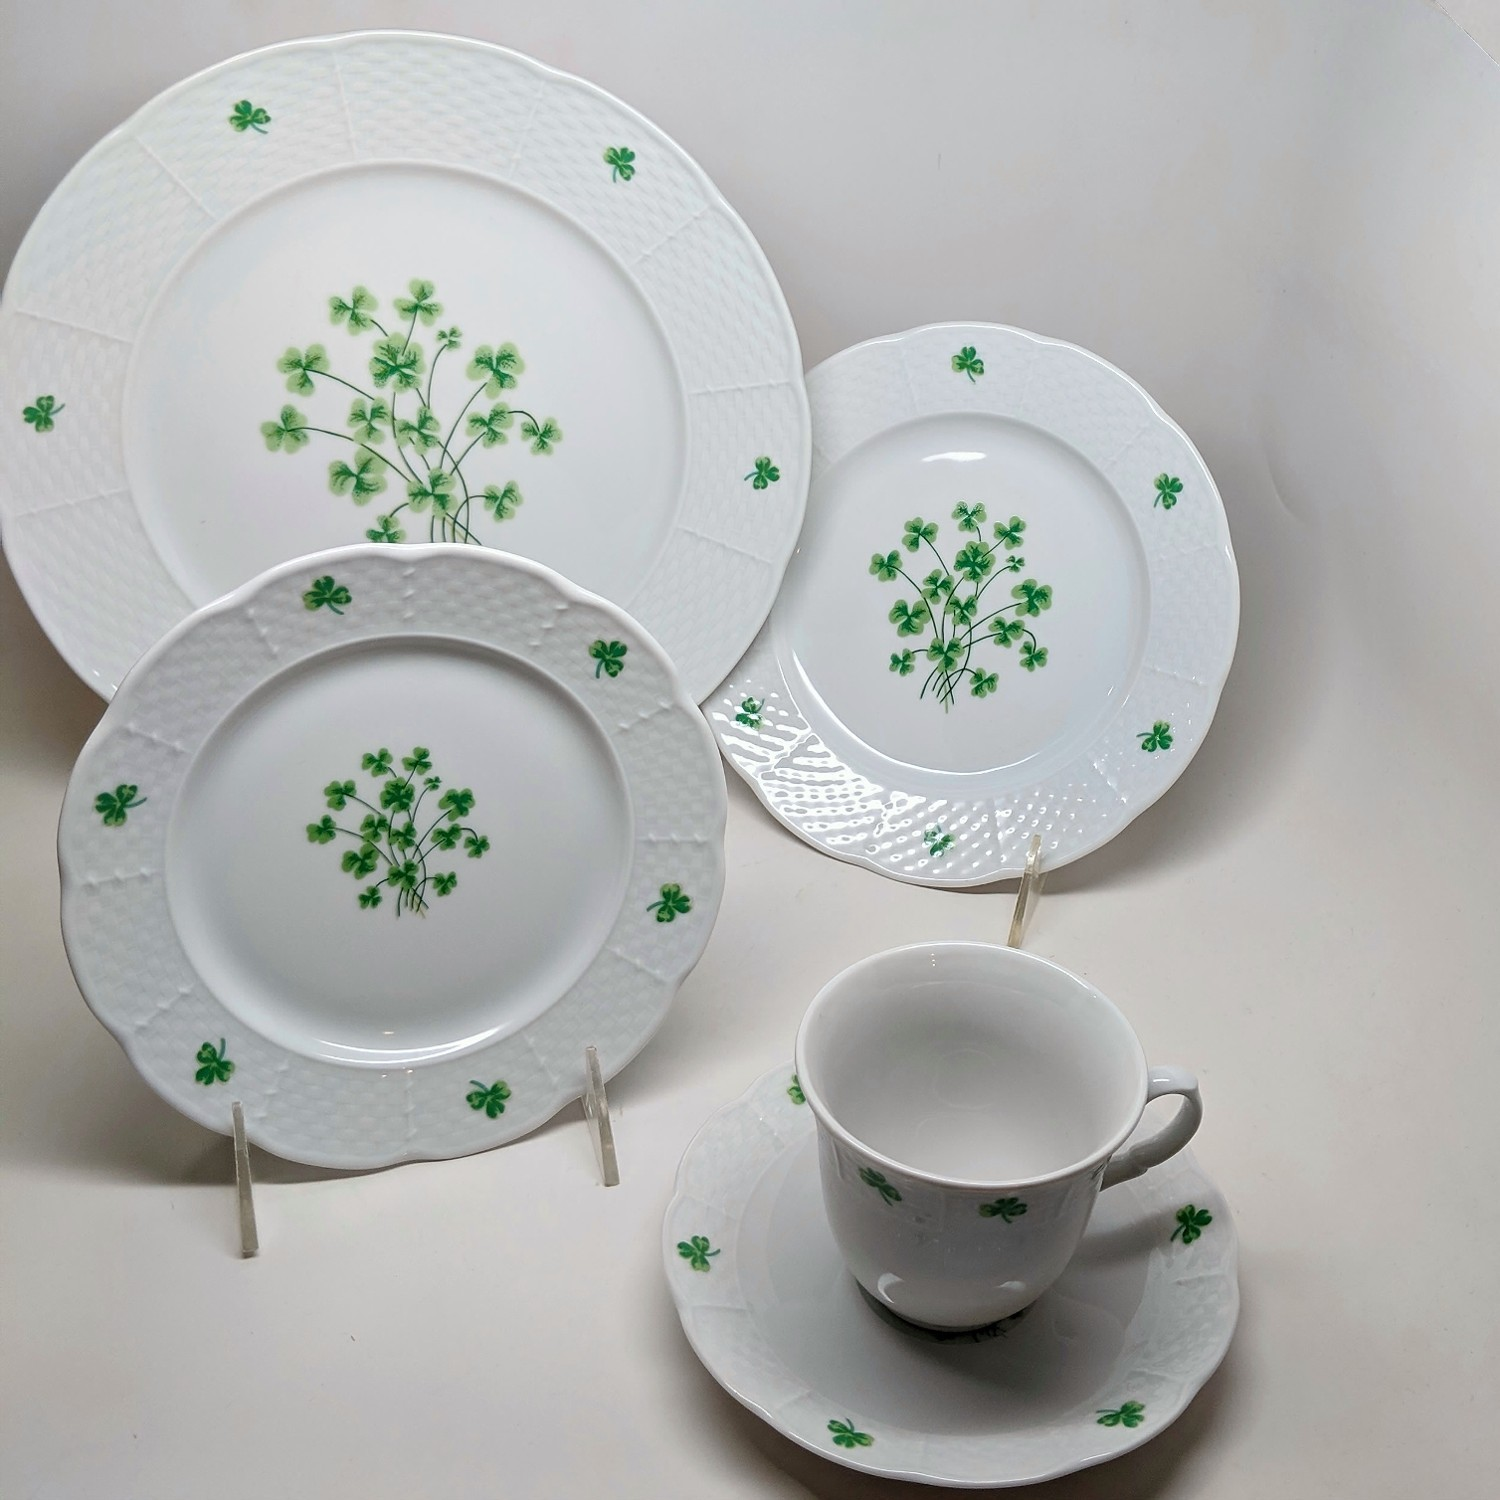 shamrock-5-piece-place-setting